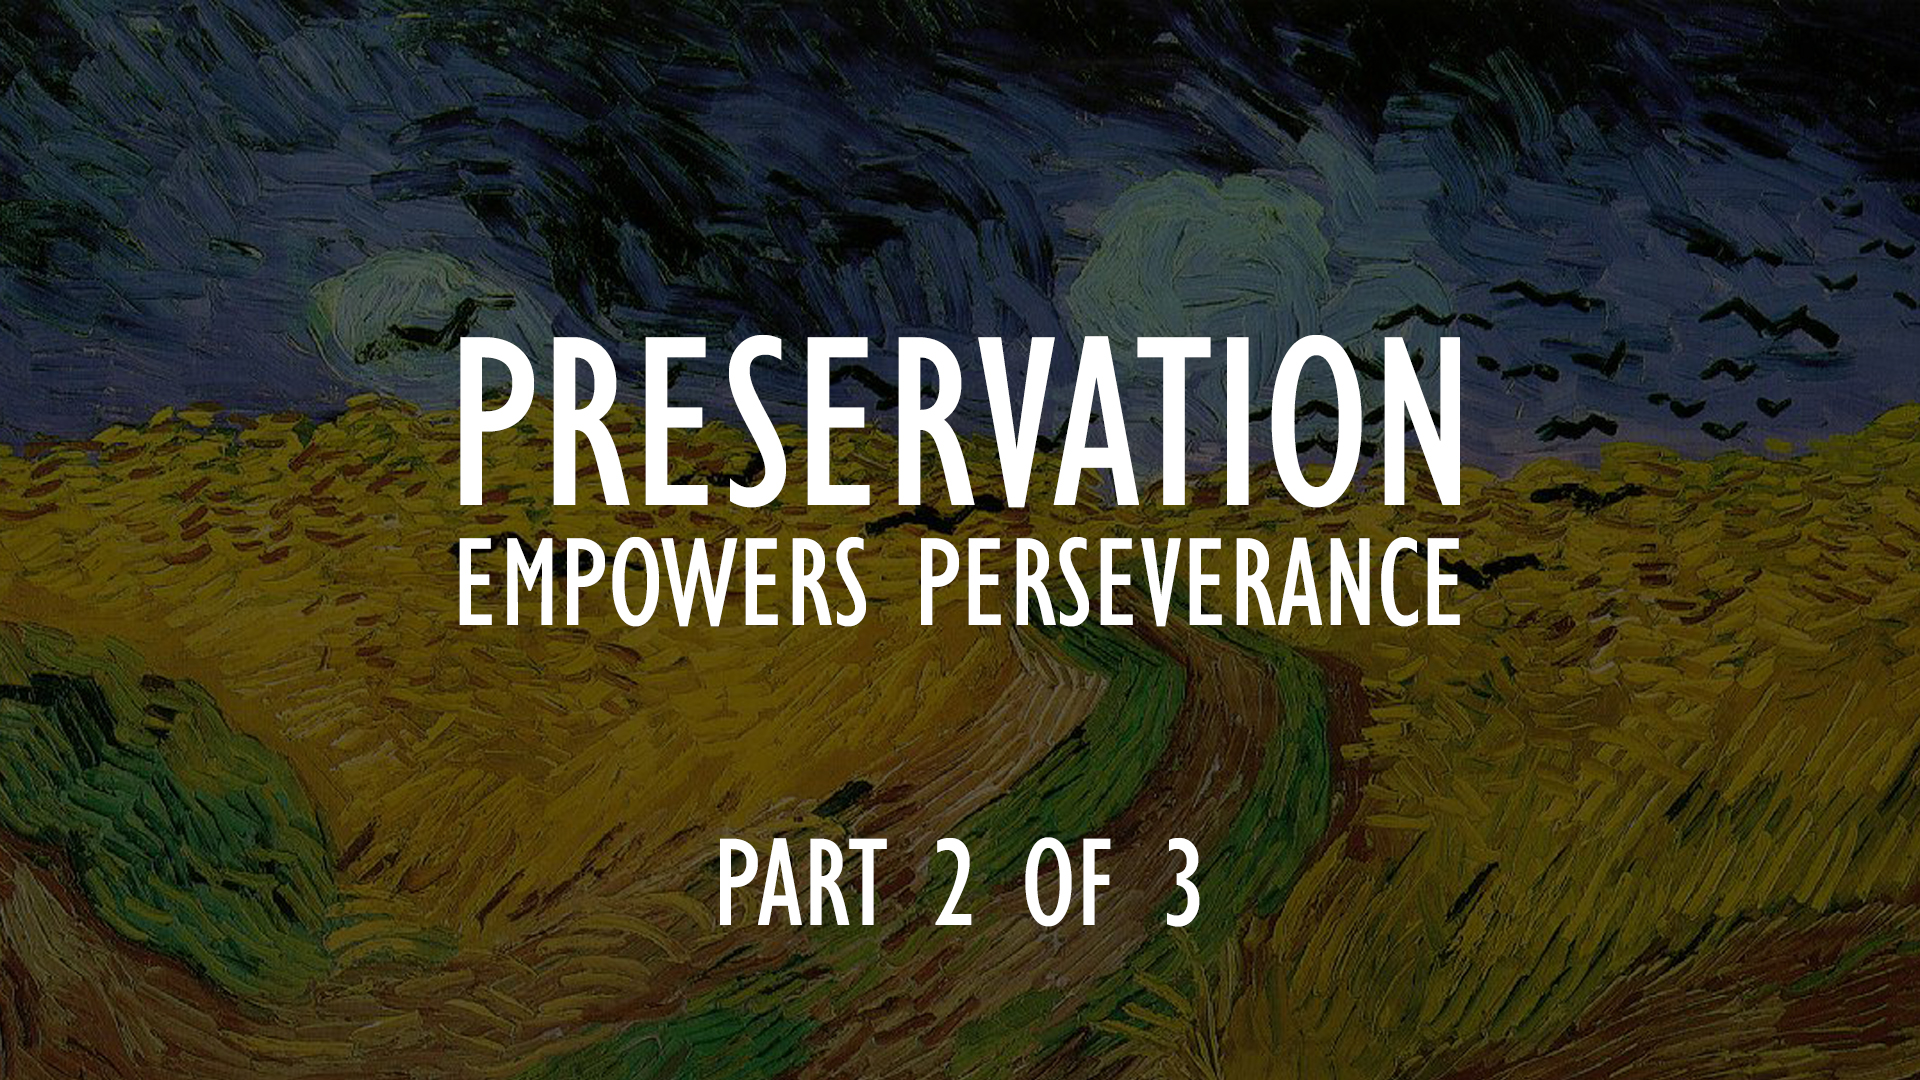 blog--God-empowers-providence-romans-acts-18-1-17-Paul-apostle-preservation-perseverance-2